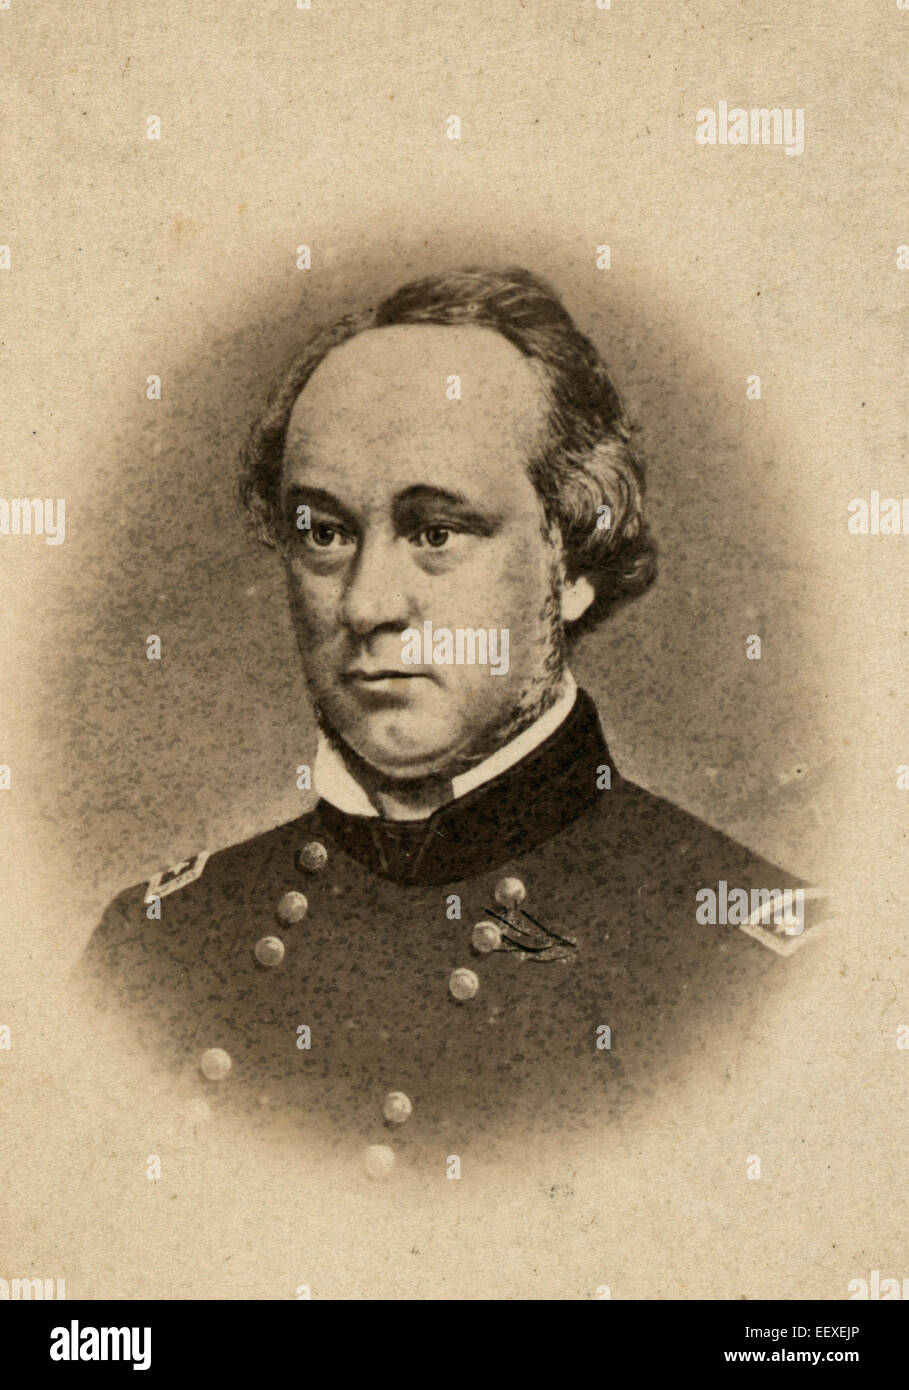 General Henry Wager Halleck, United States Army,  circa 1861 - Stock Image